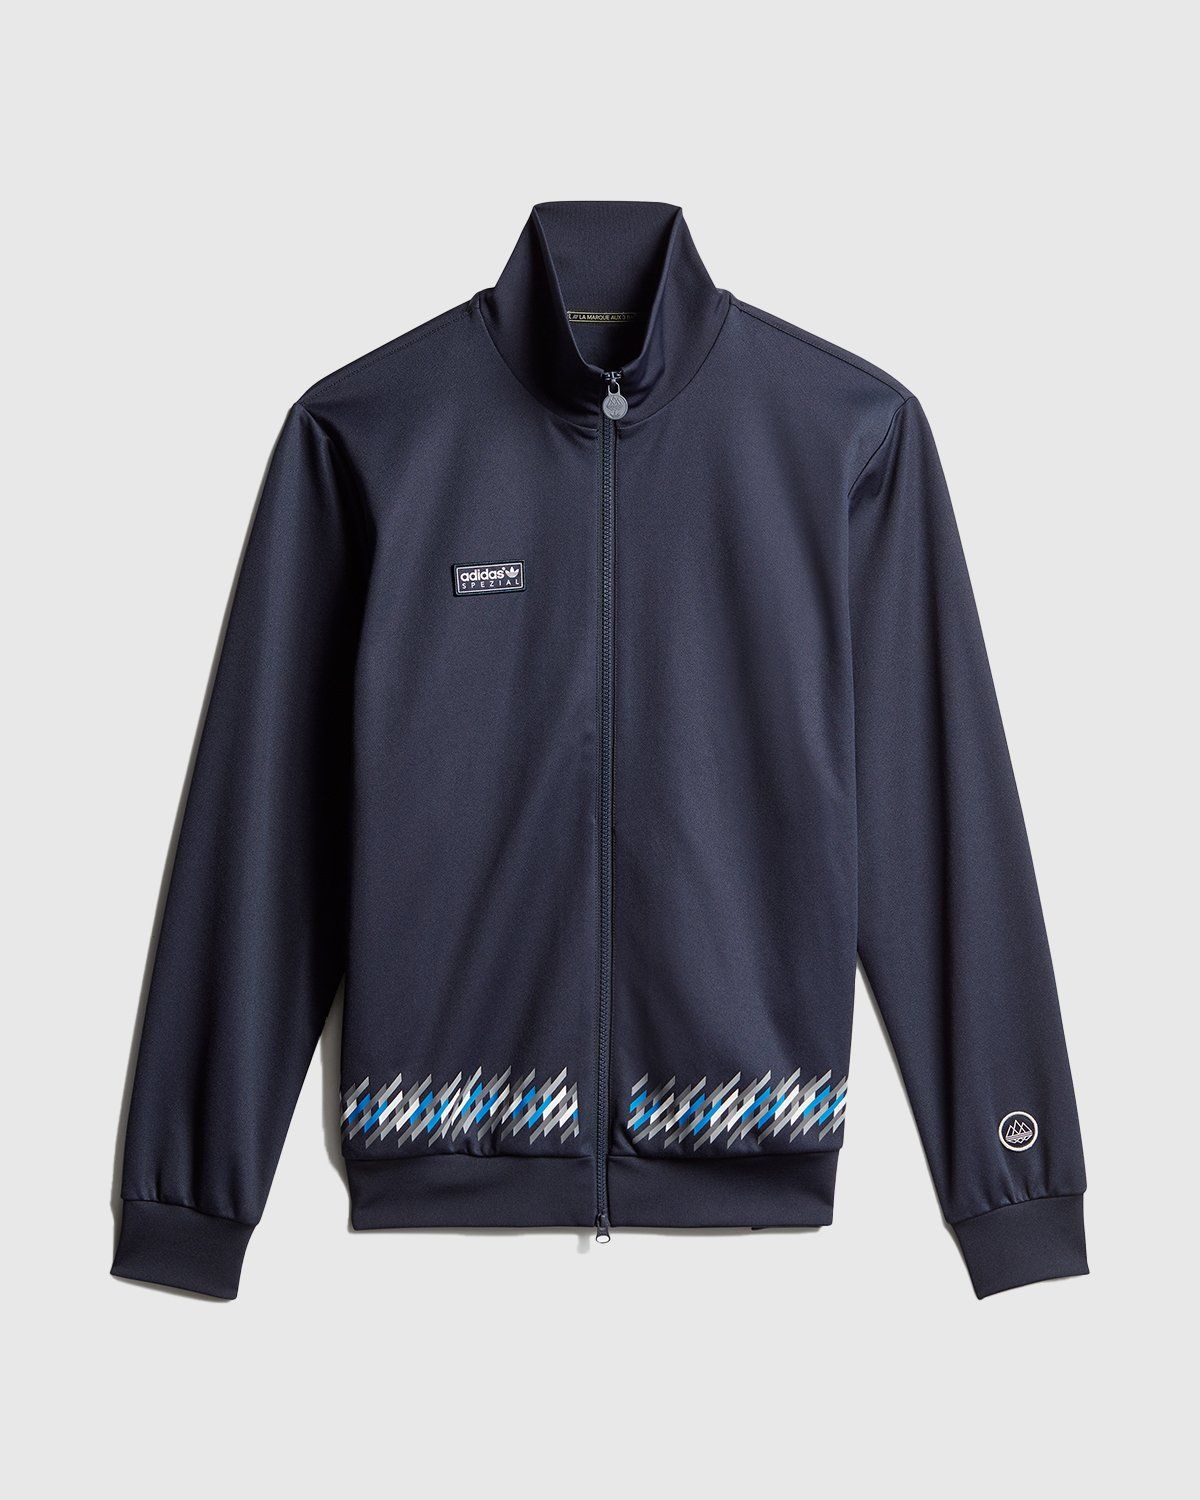 Adidas — Track Top Spezial x New Order Navy - Image 1